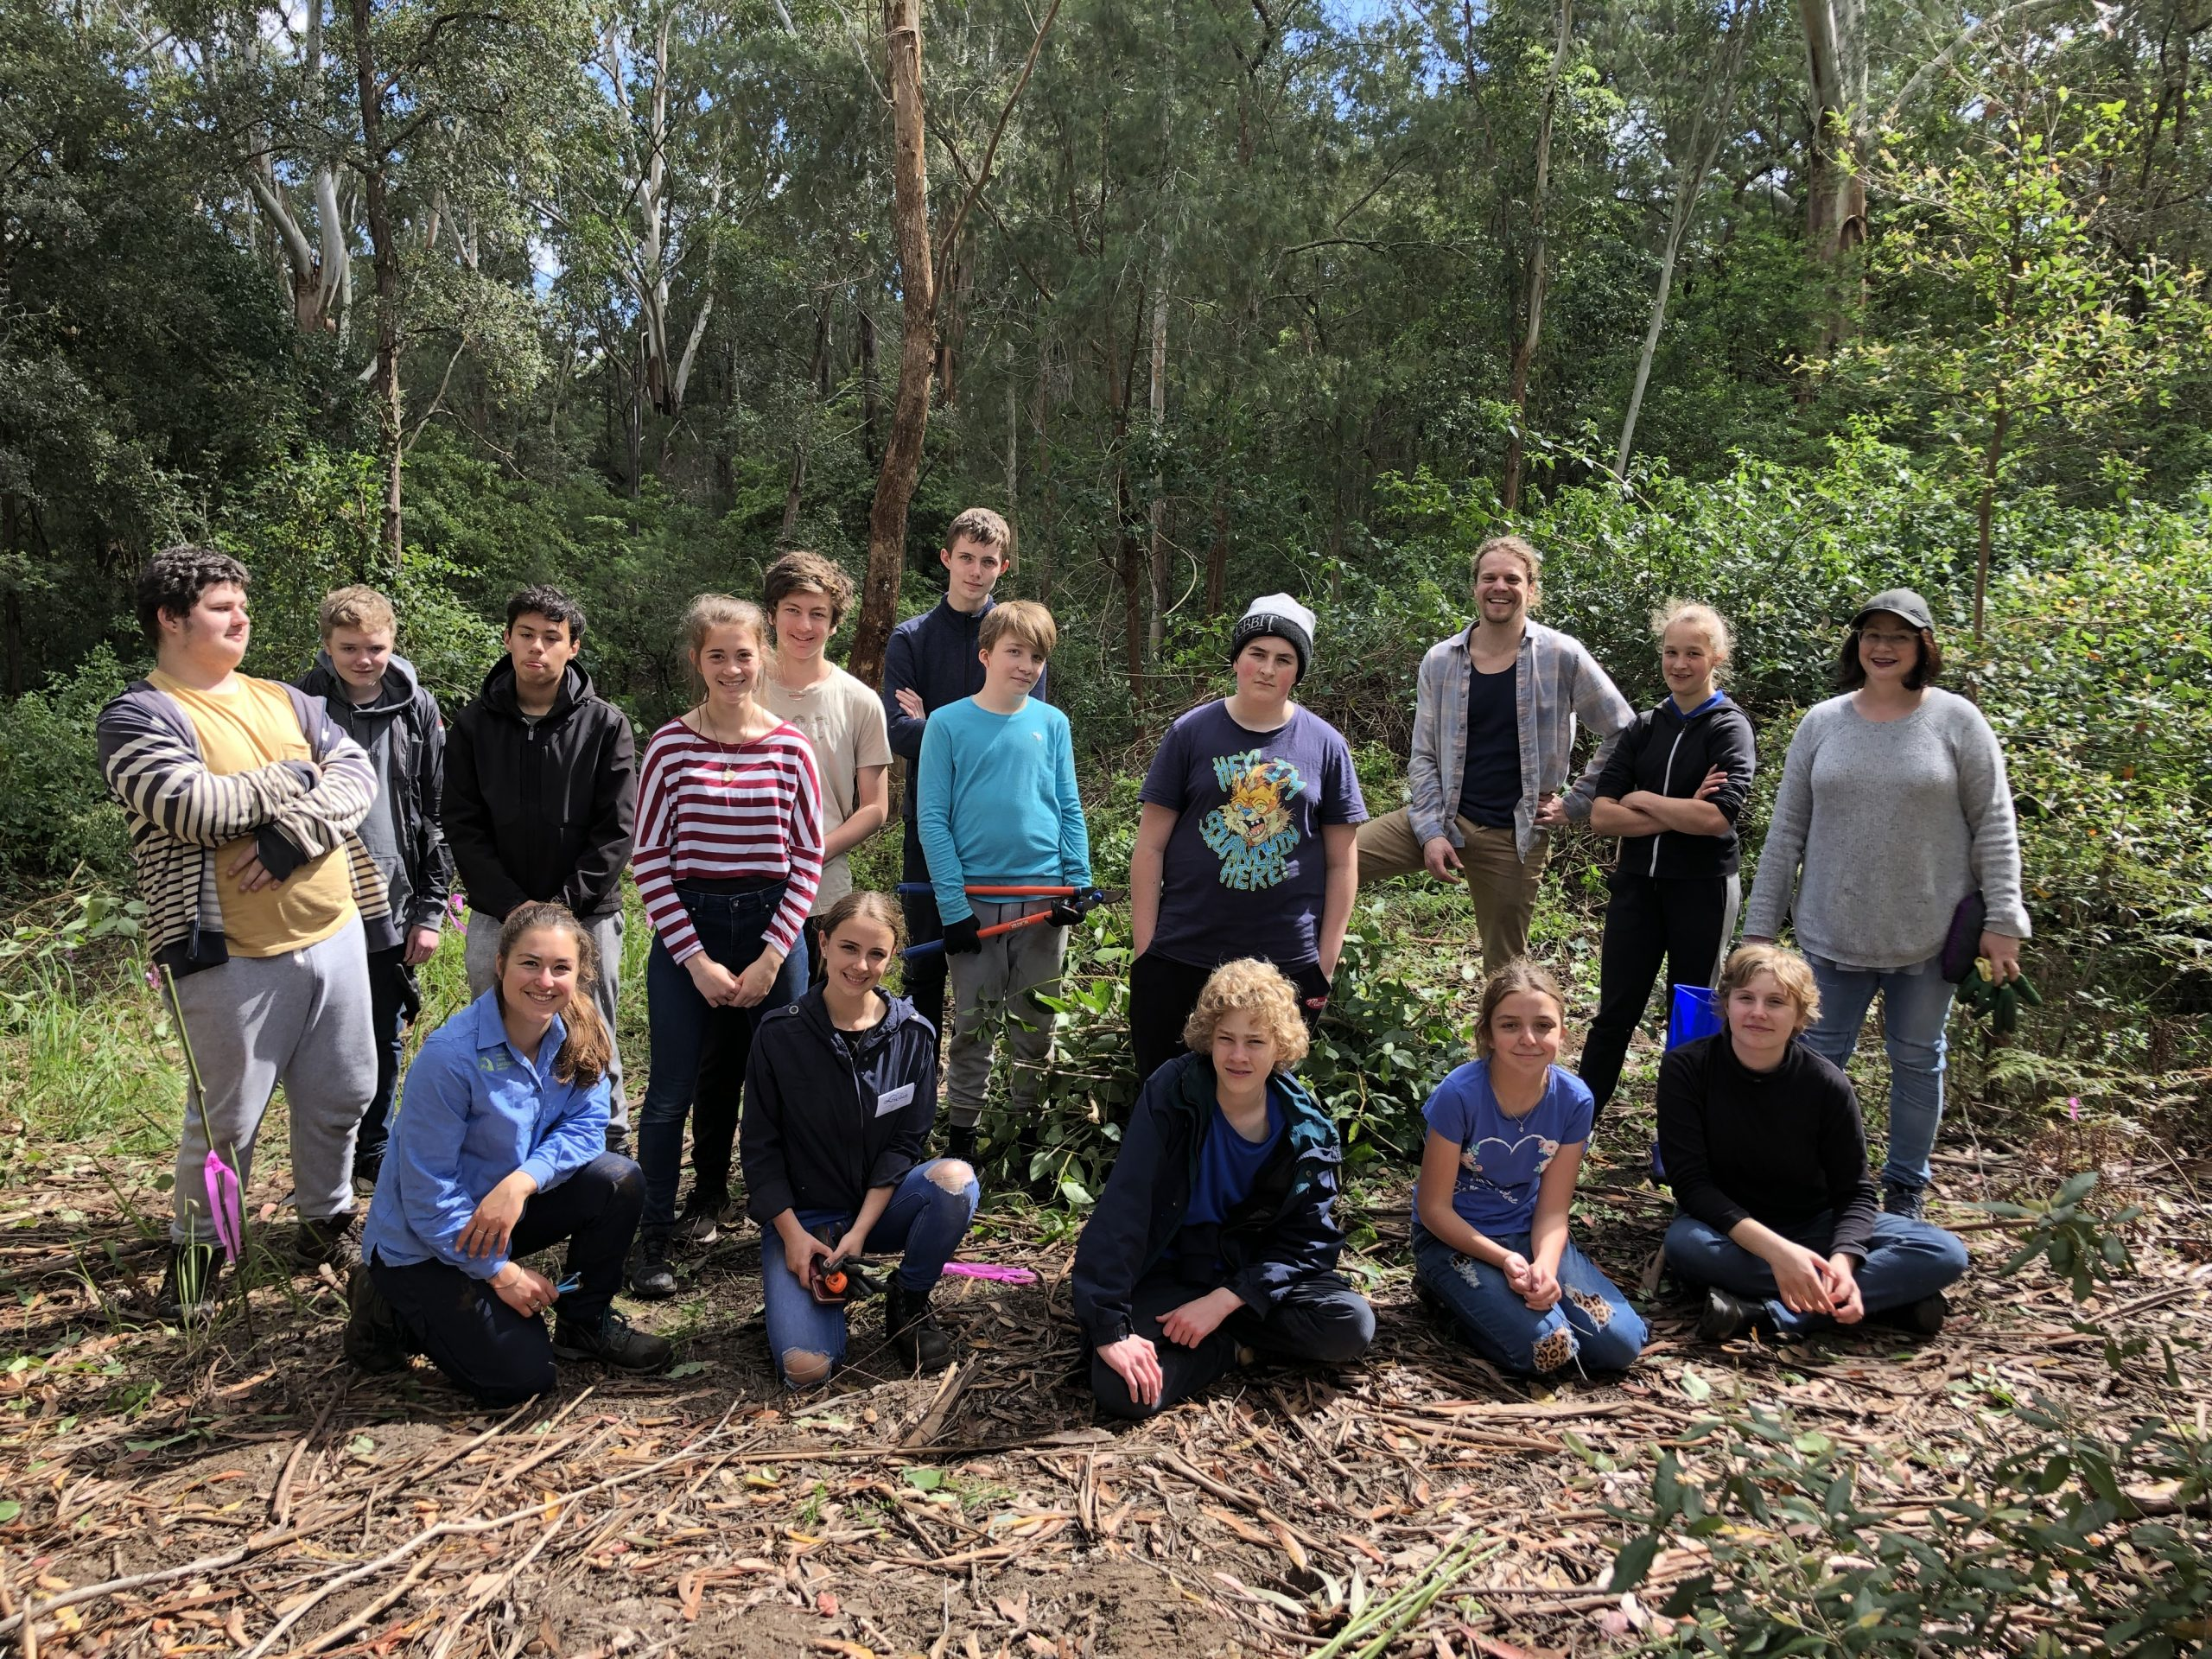 Assisting Schools with Environmental Education